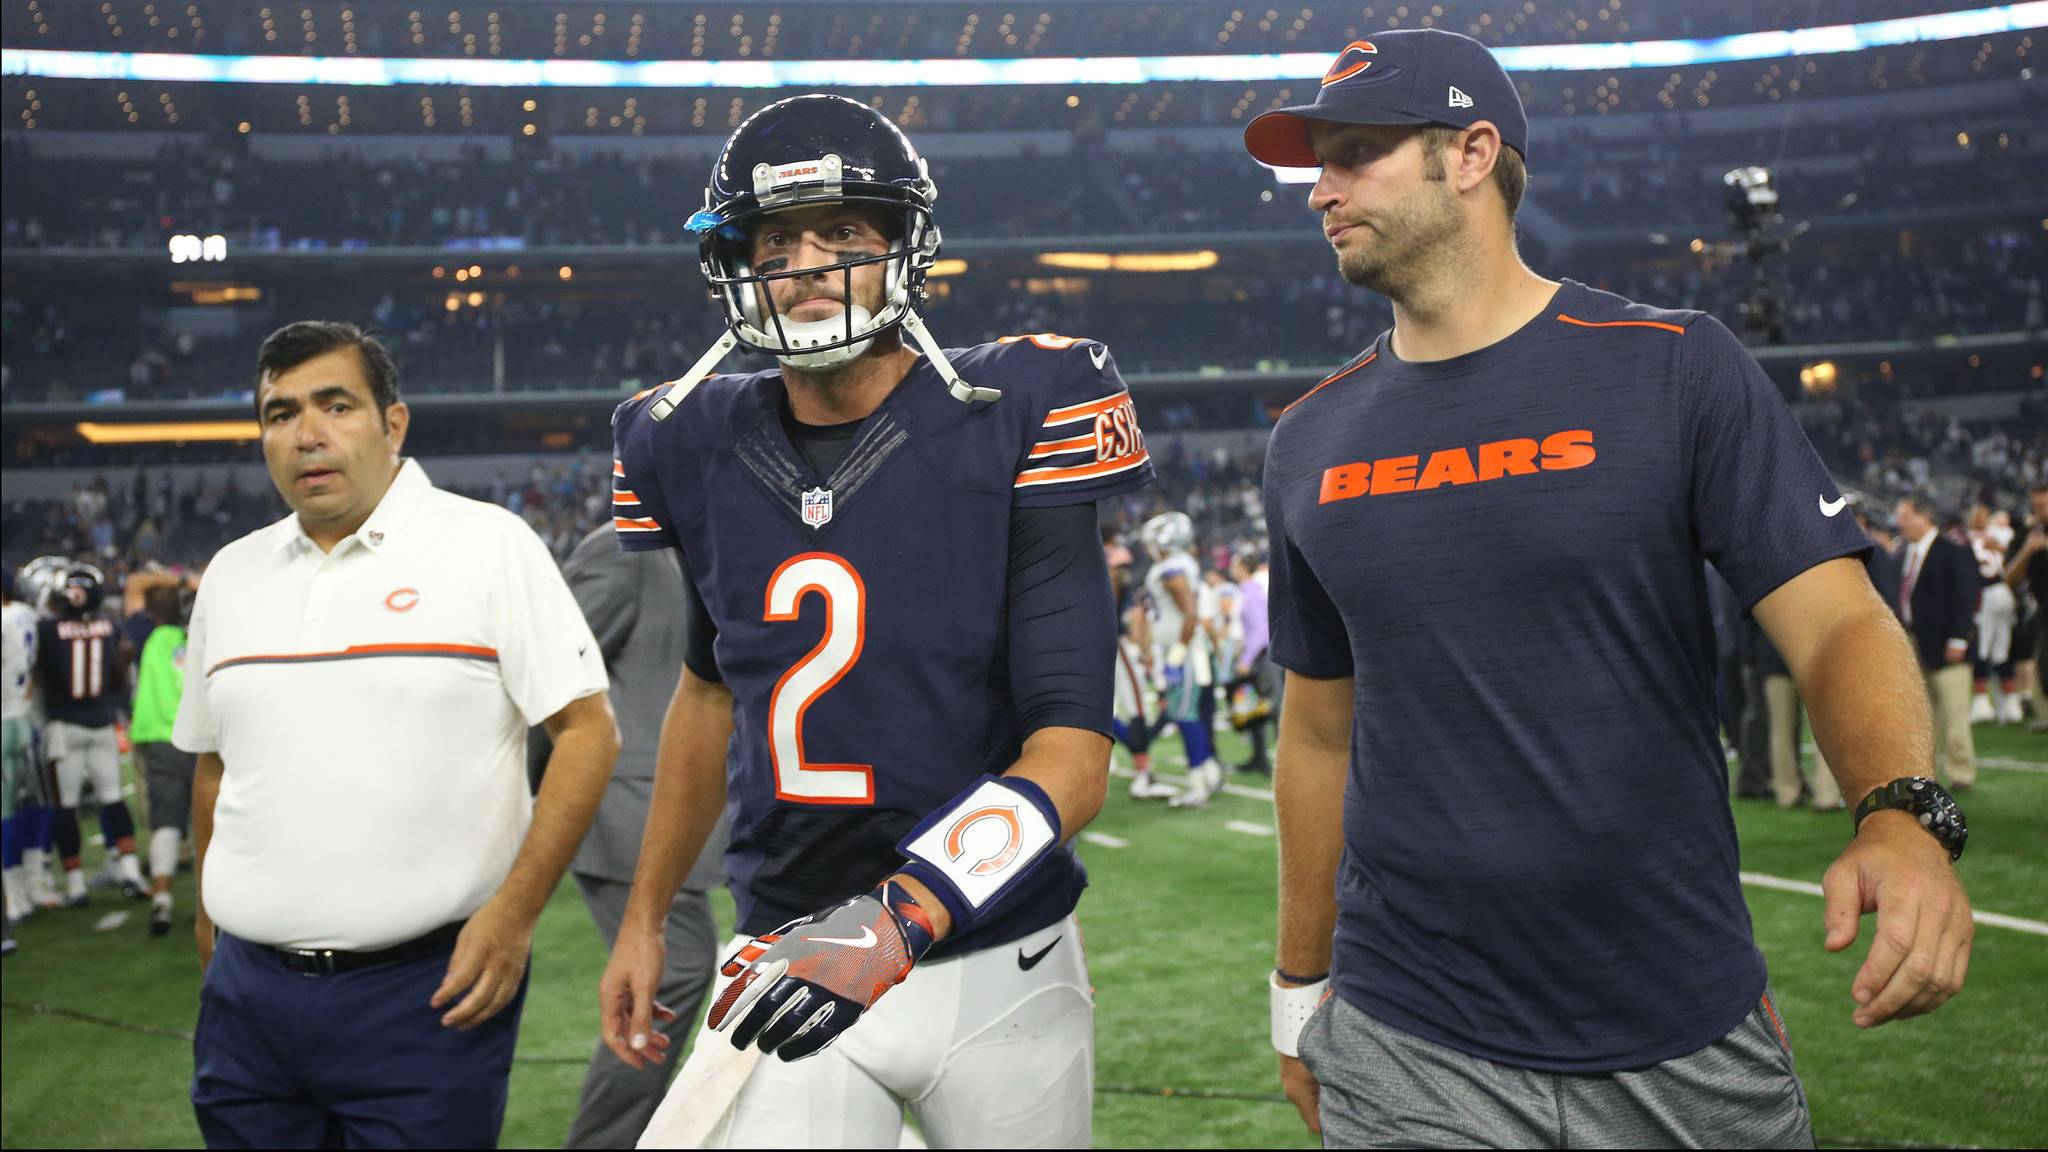 Ct-how-bears-can-beat-lions-spt-1002-20161001